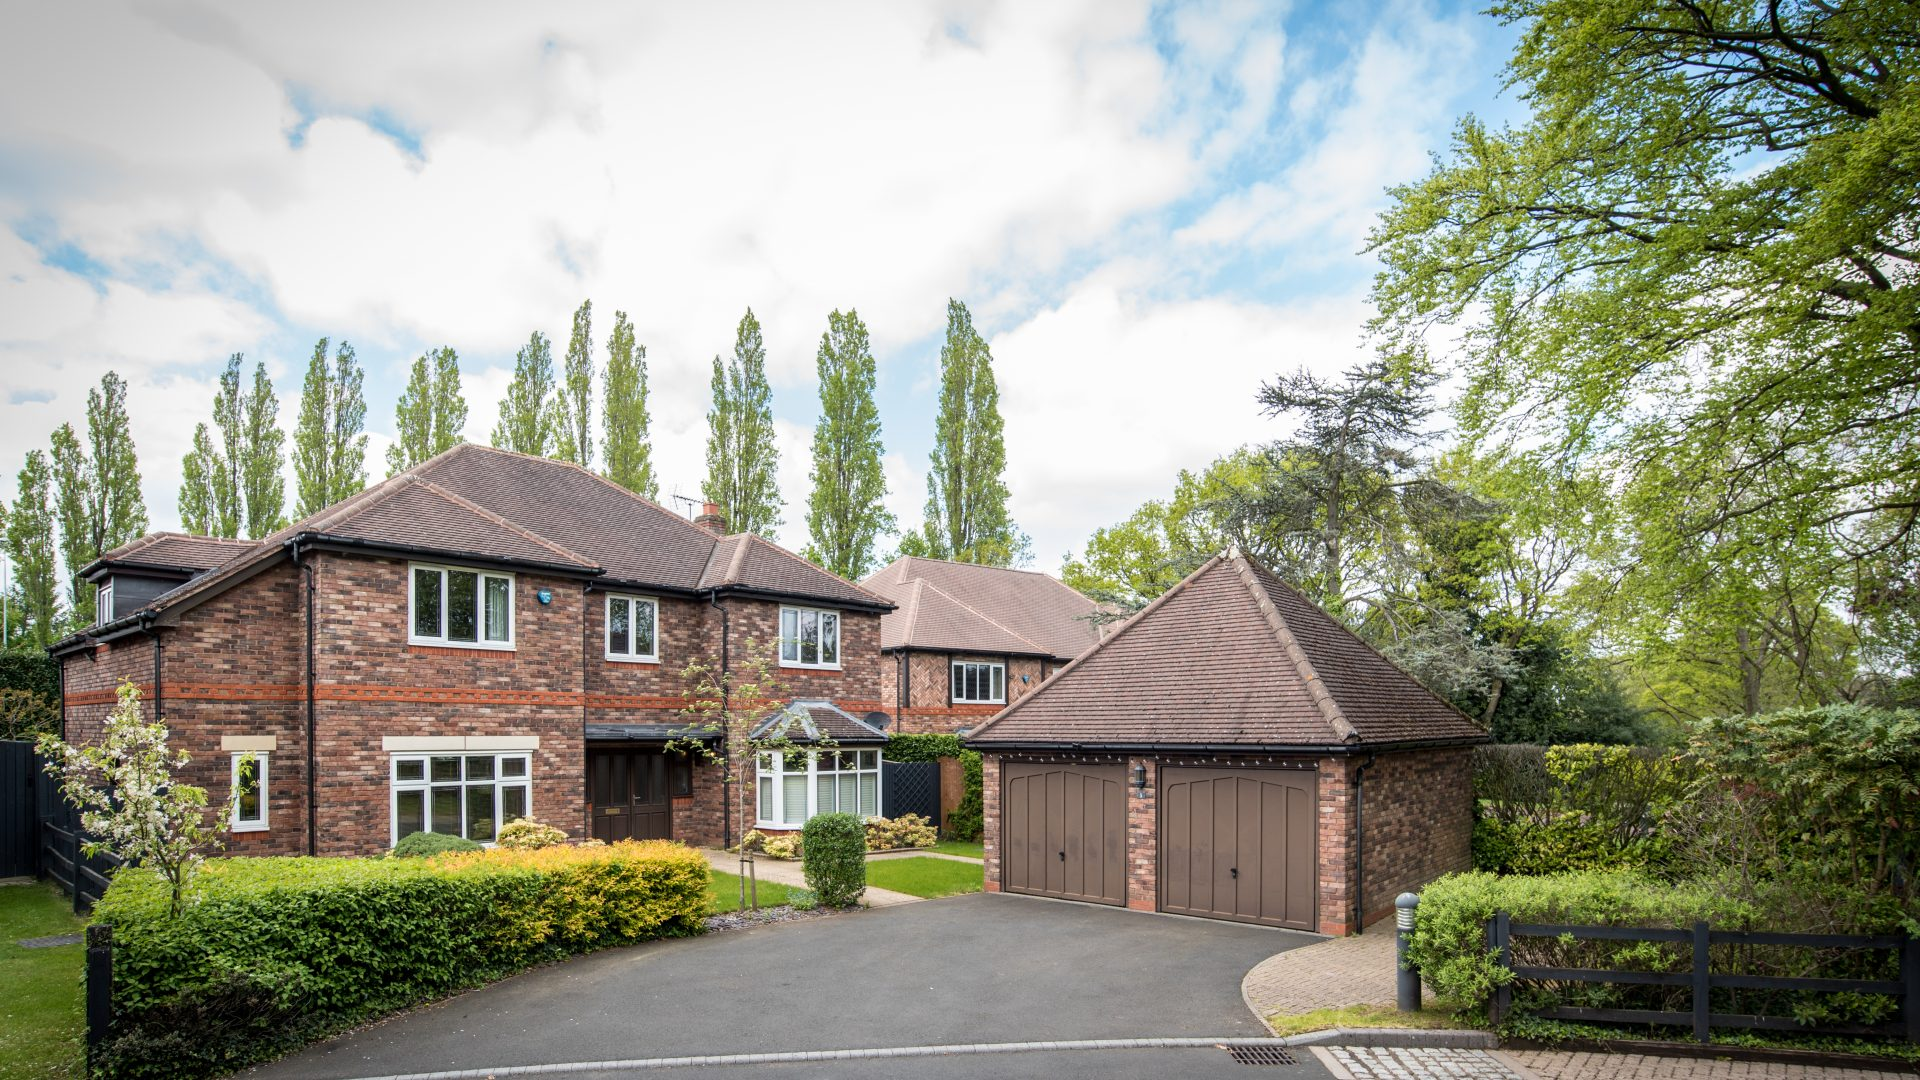 Clairvaux Gardens, Solihull for sale with Mr and Mrs Clarke estate agent